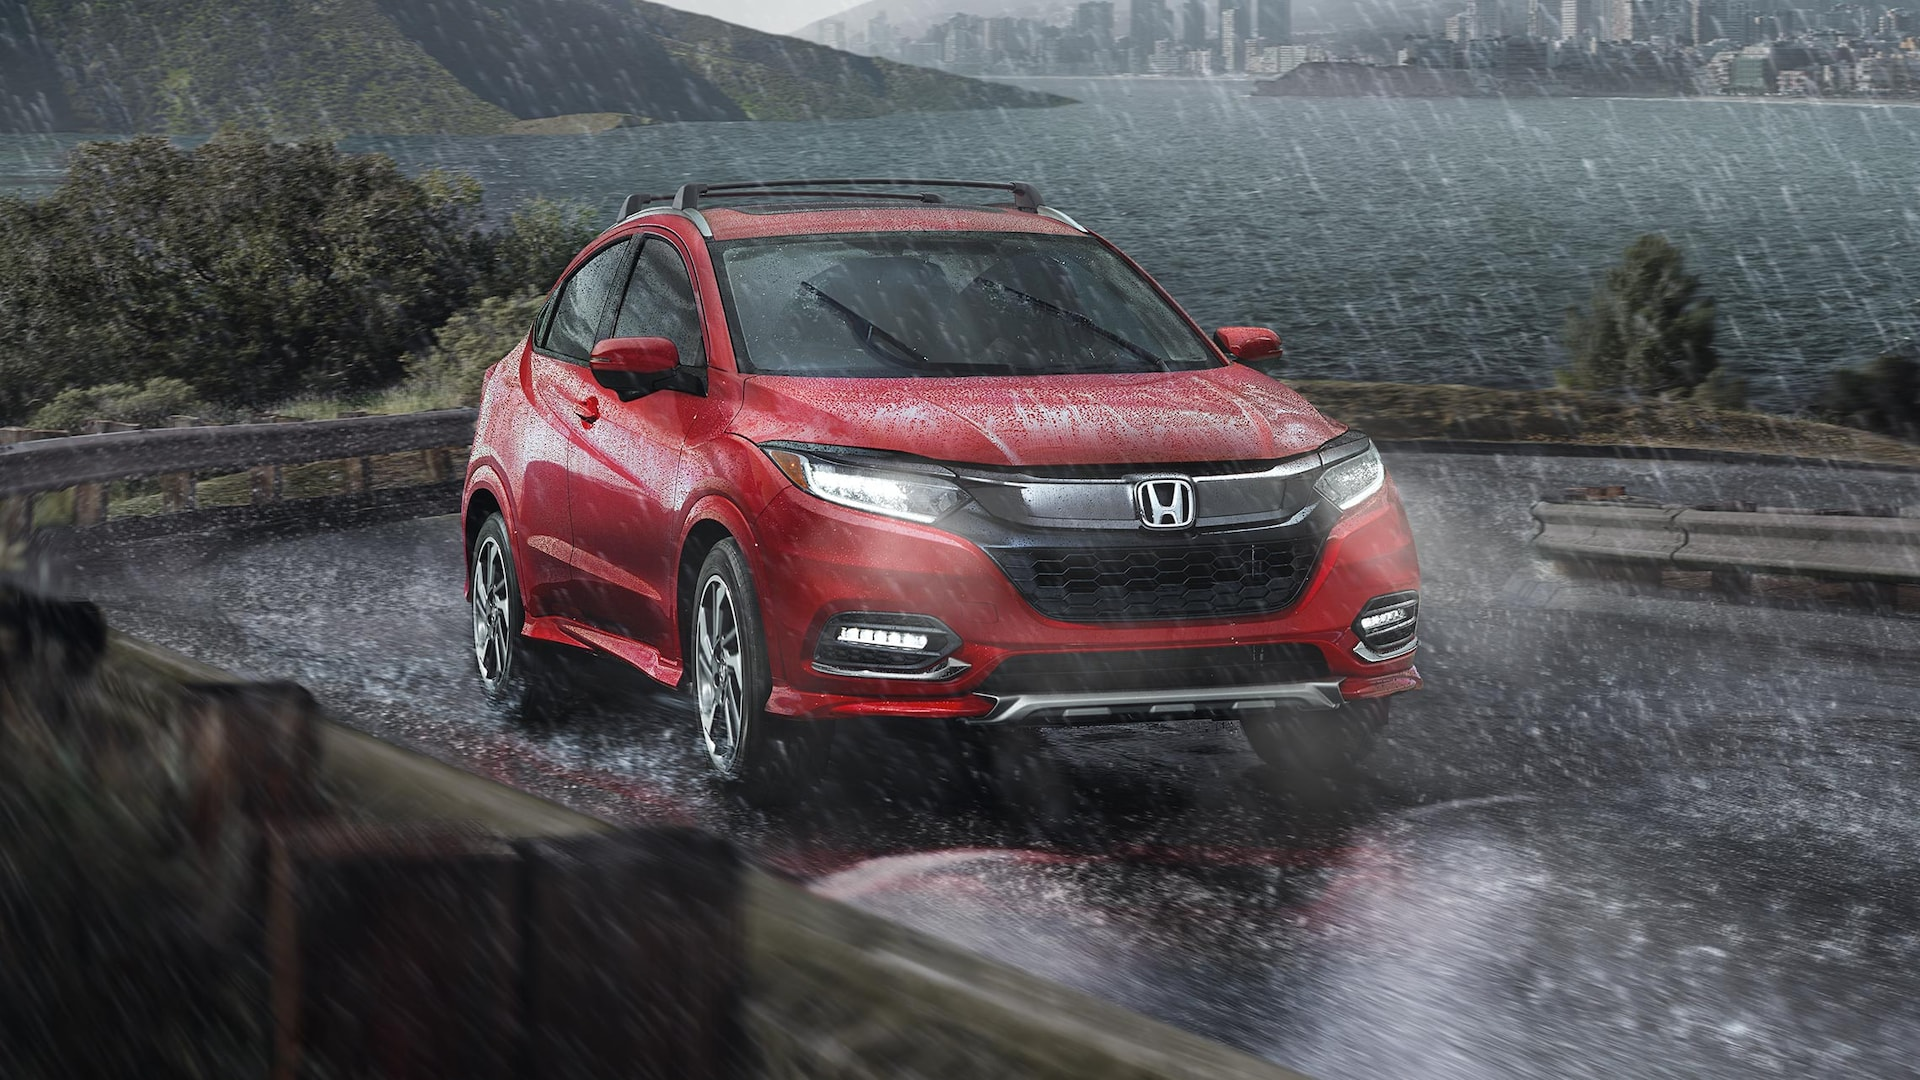 Front 7/8 passenger's side view of the 2019 Honda HR-V Touring in Milano Red driving on lakeside road in the rain.